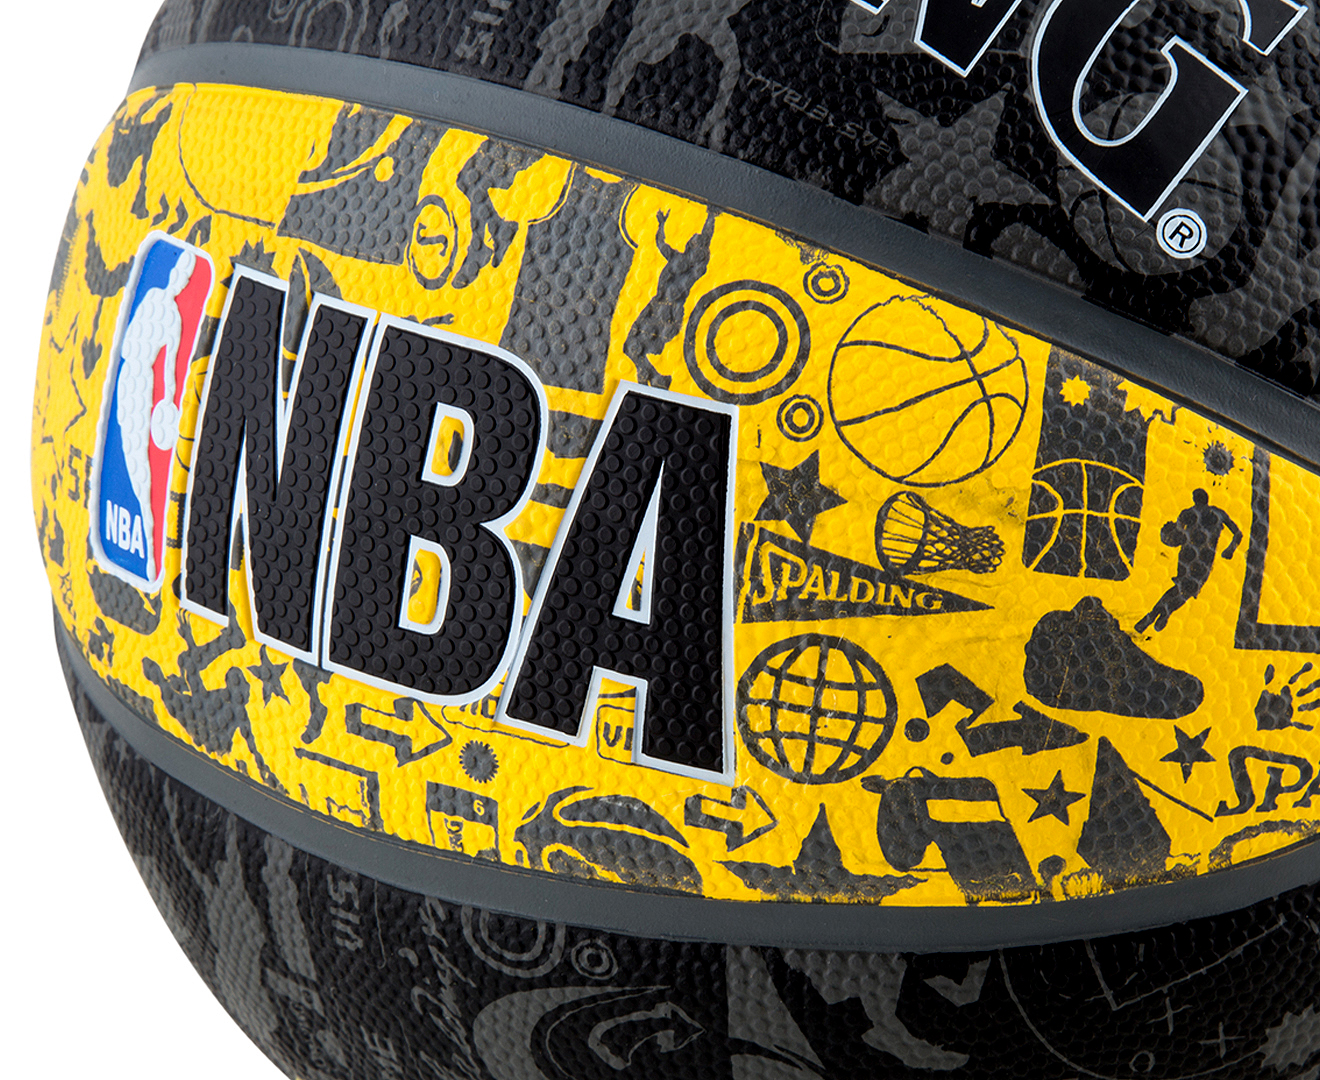 SPALDING NBA Graffiti Basketball - Size 7 | eBay